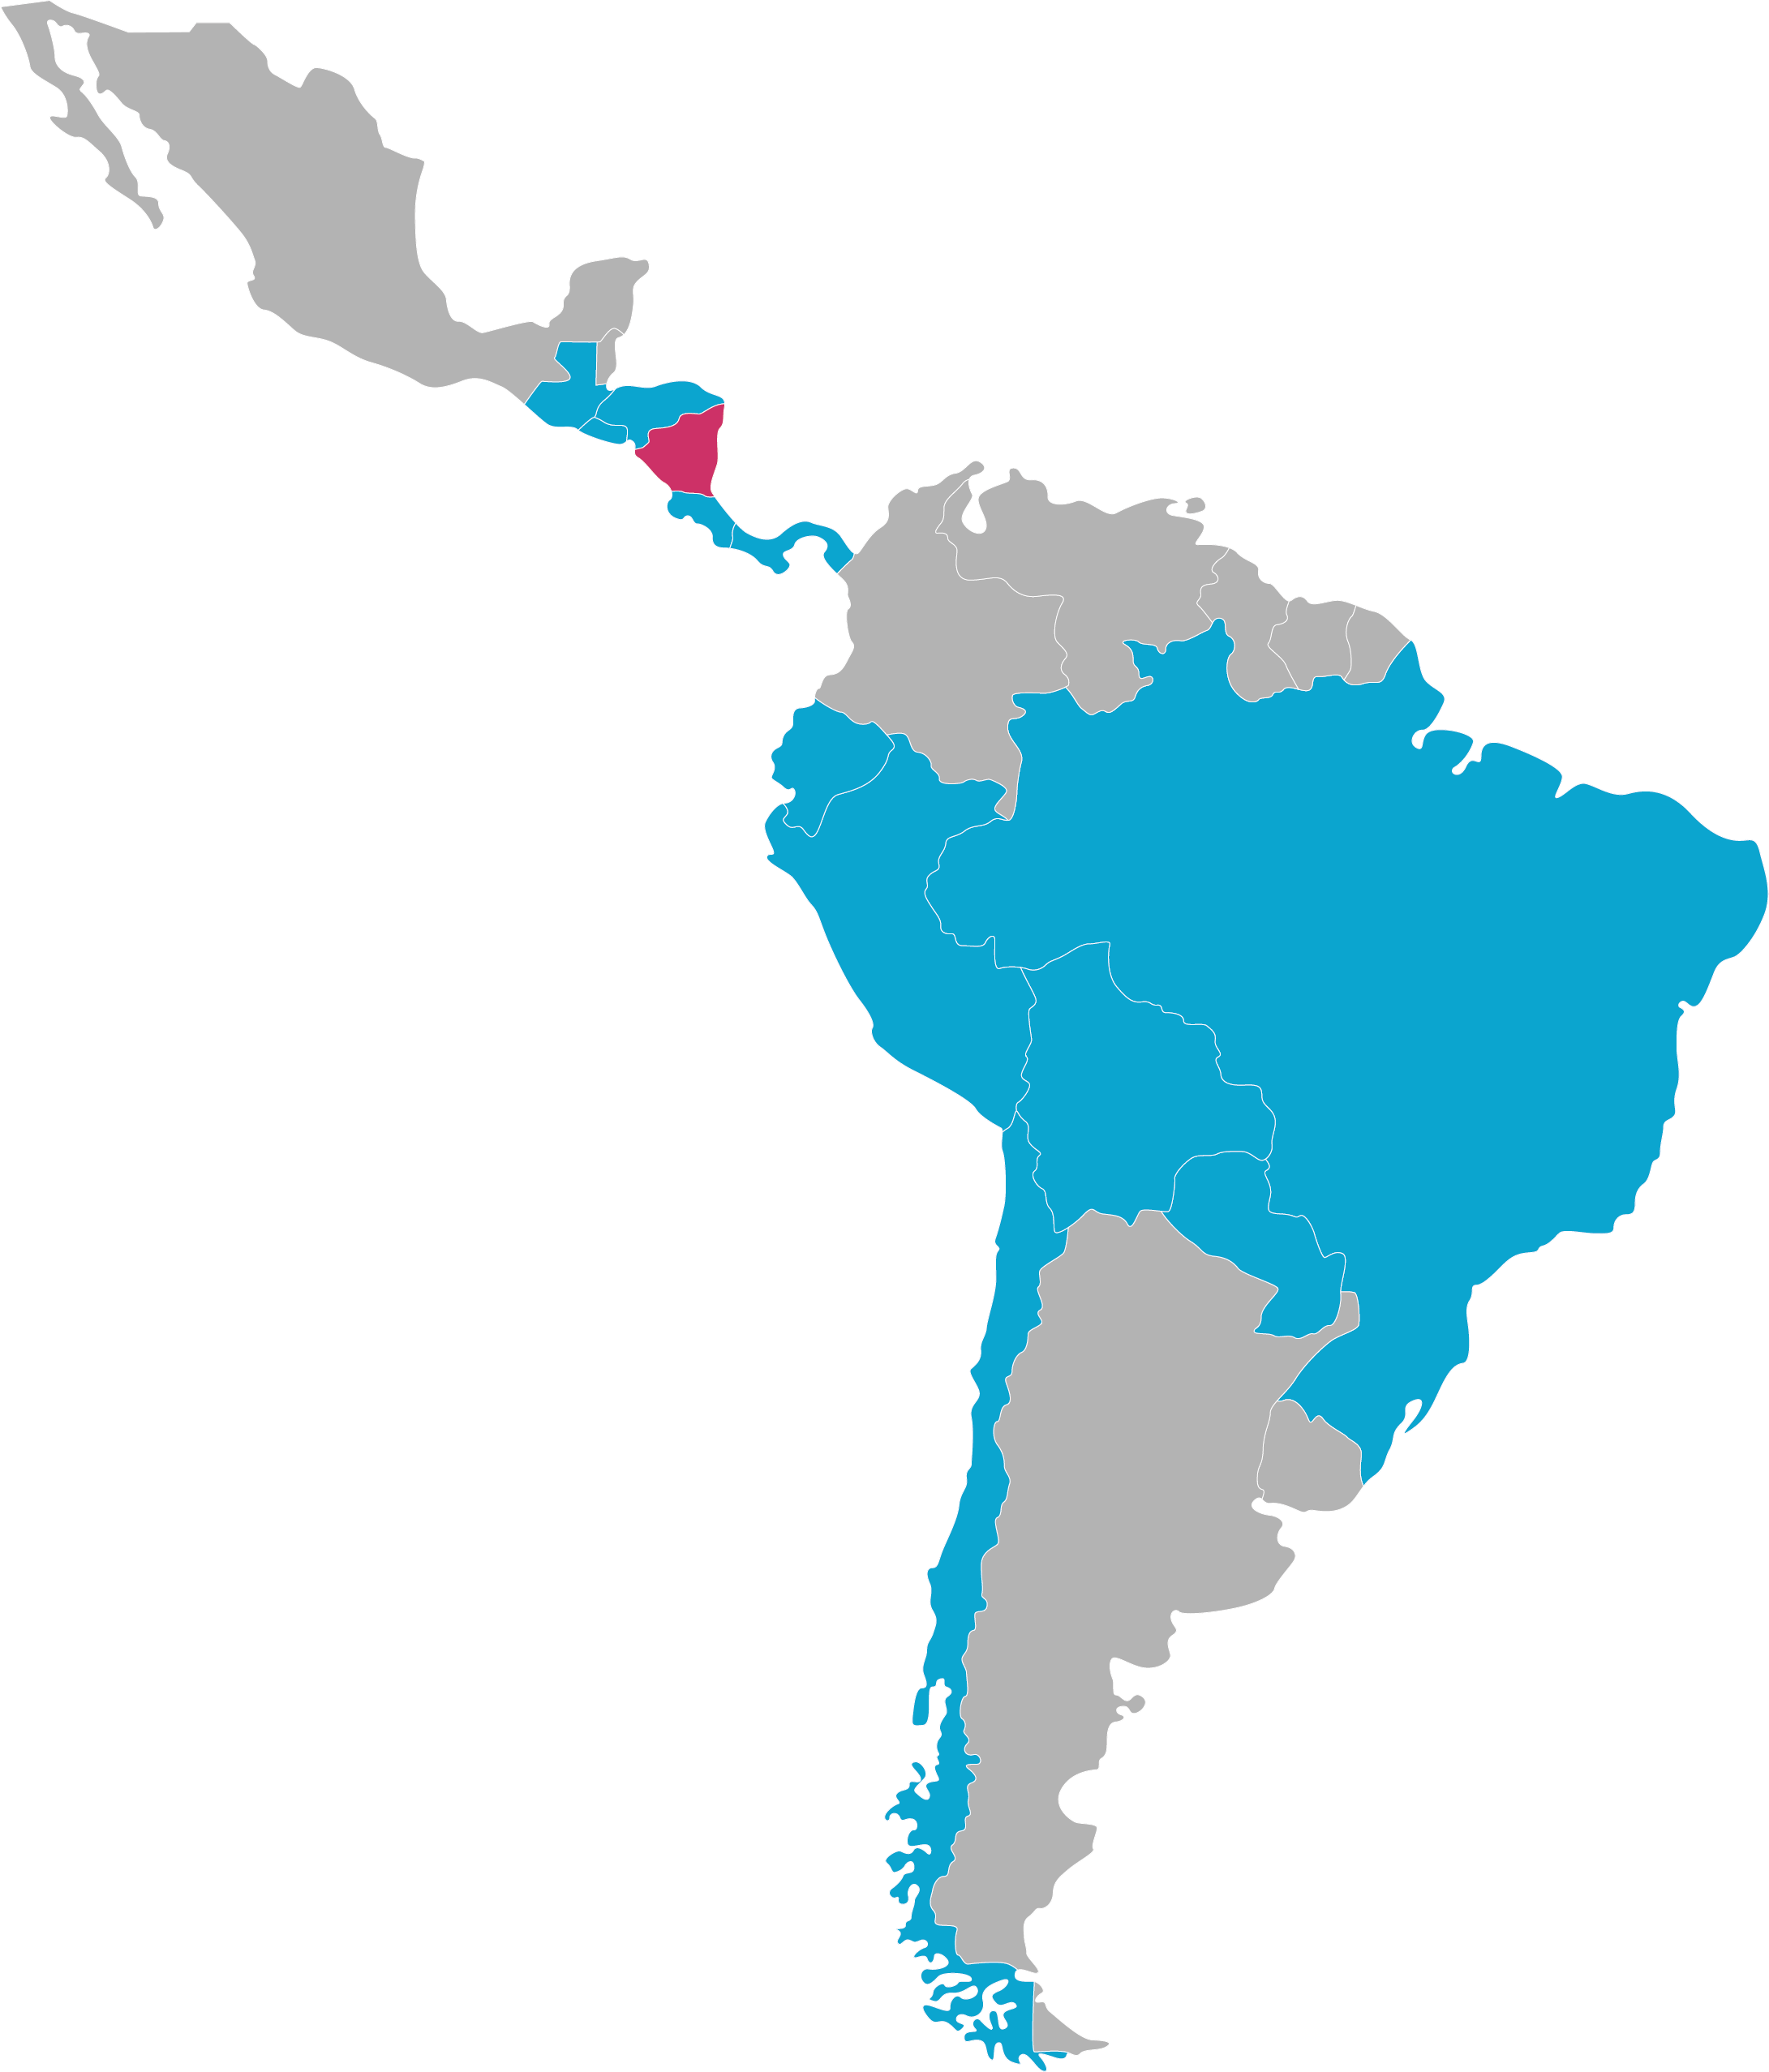 LATAM Map.png